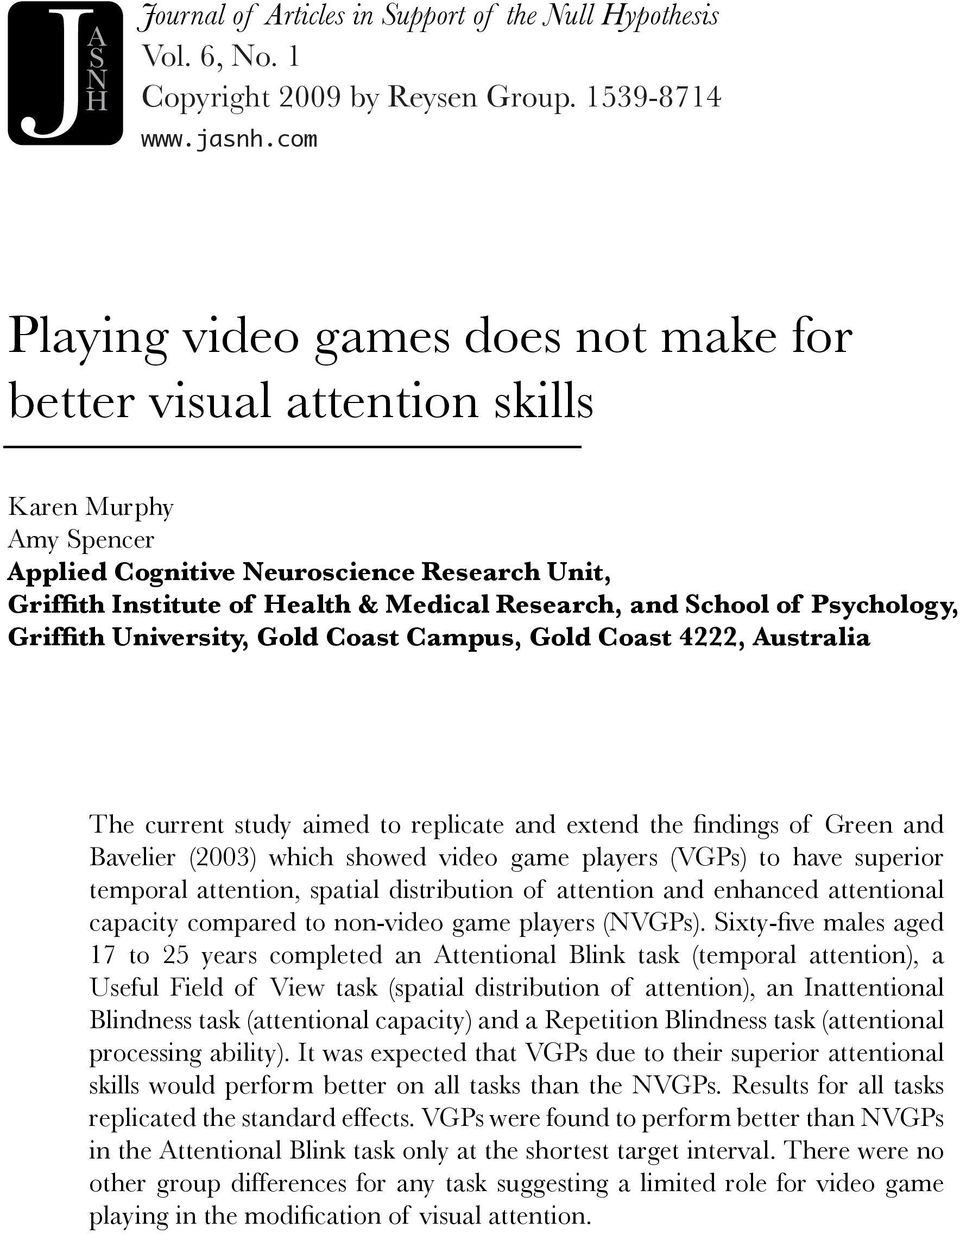 School of Psychology, Griffith University, Gold Coast Campus, Gold Coast 4, Australia The current study aimed to replicate and extend the findings of Green and Bavelier (003) which showed video game